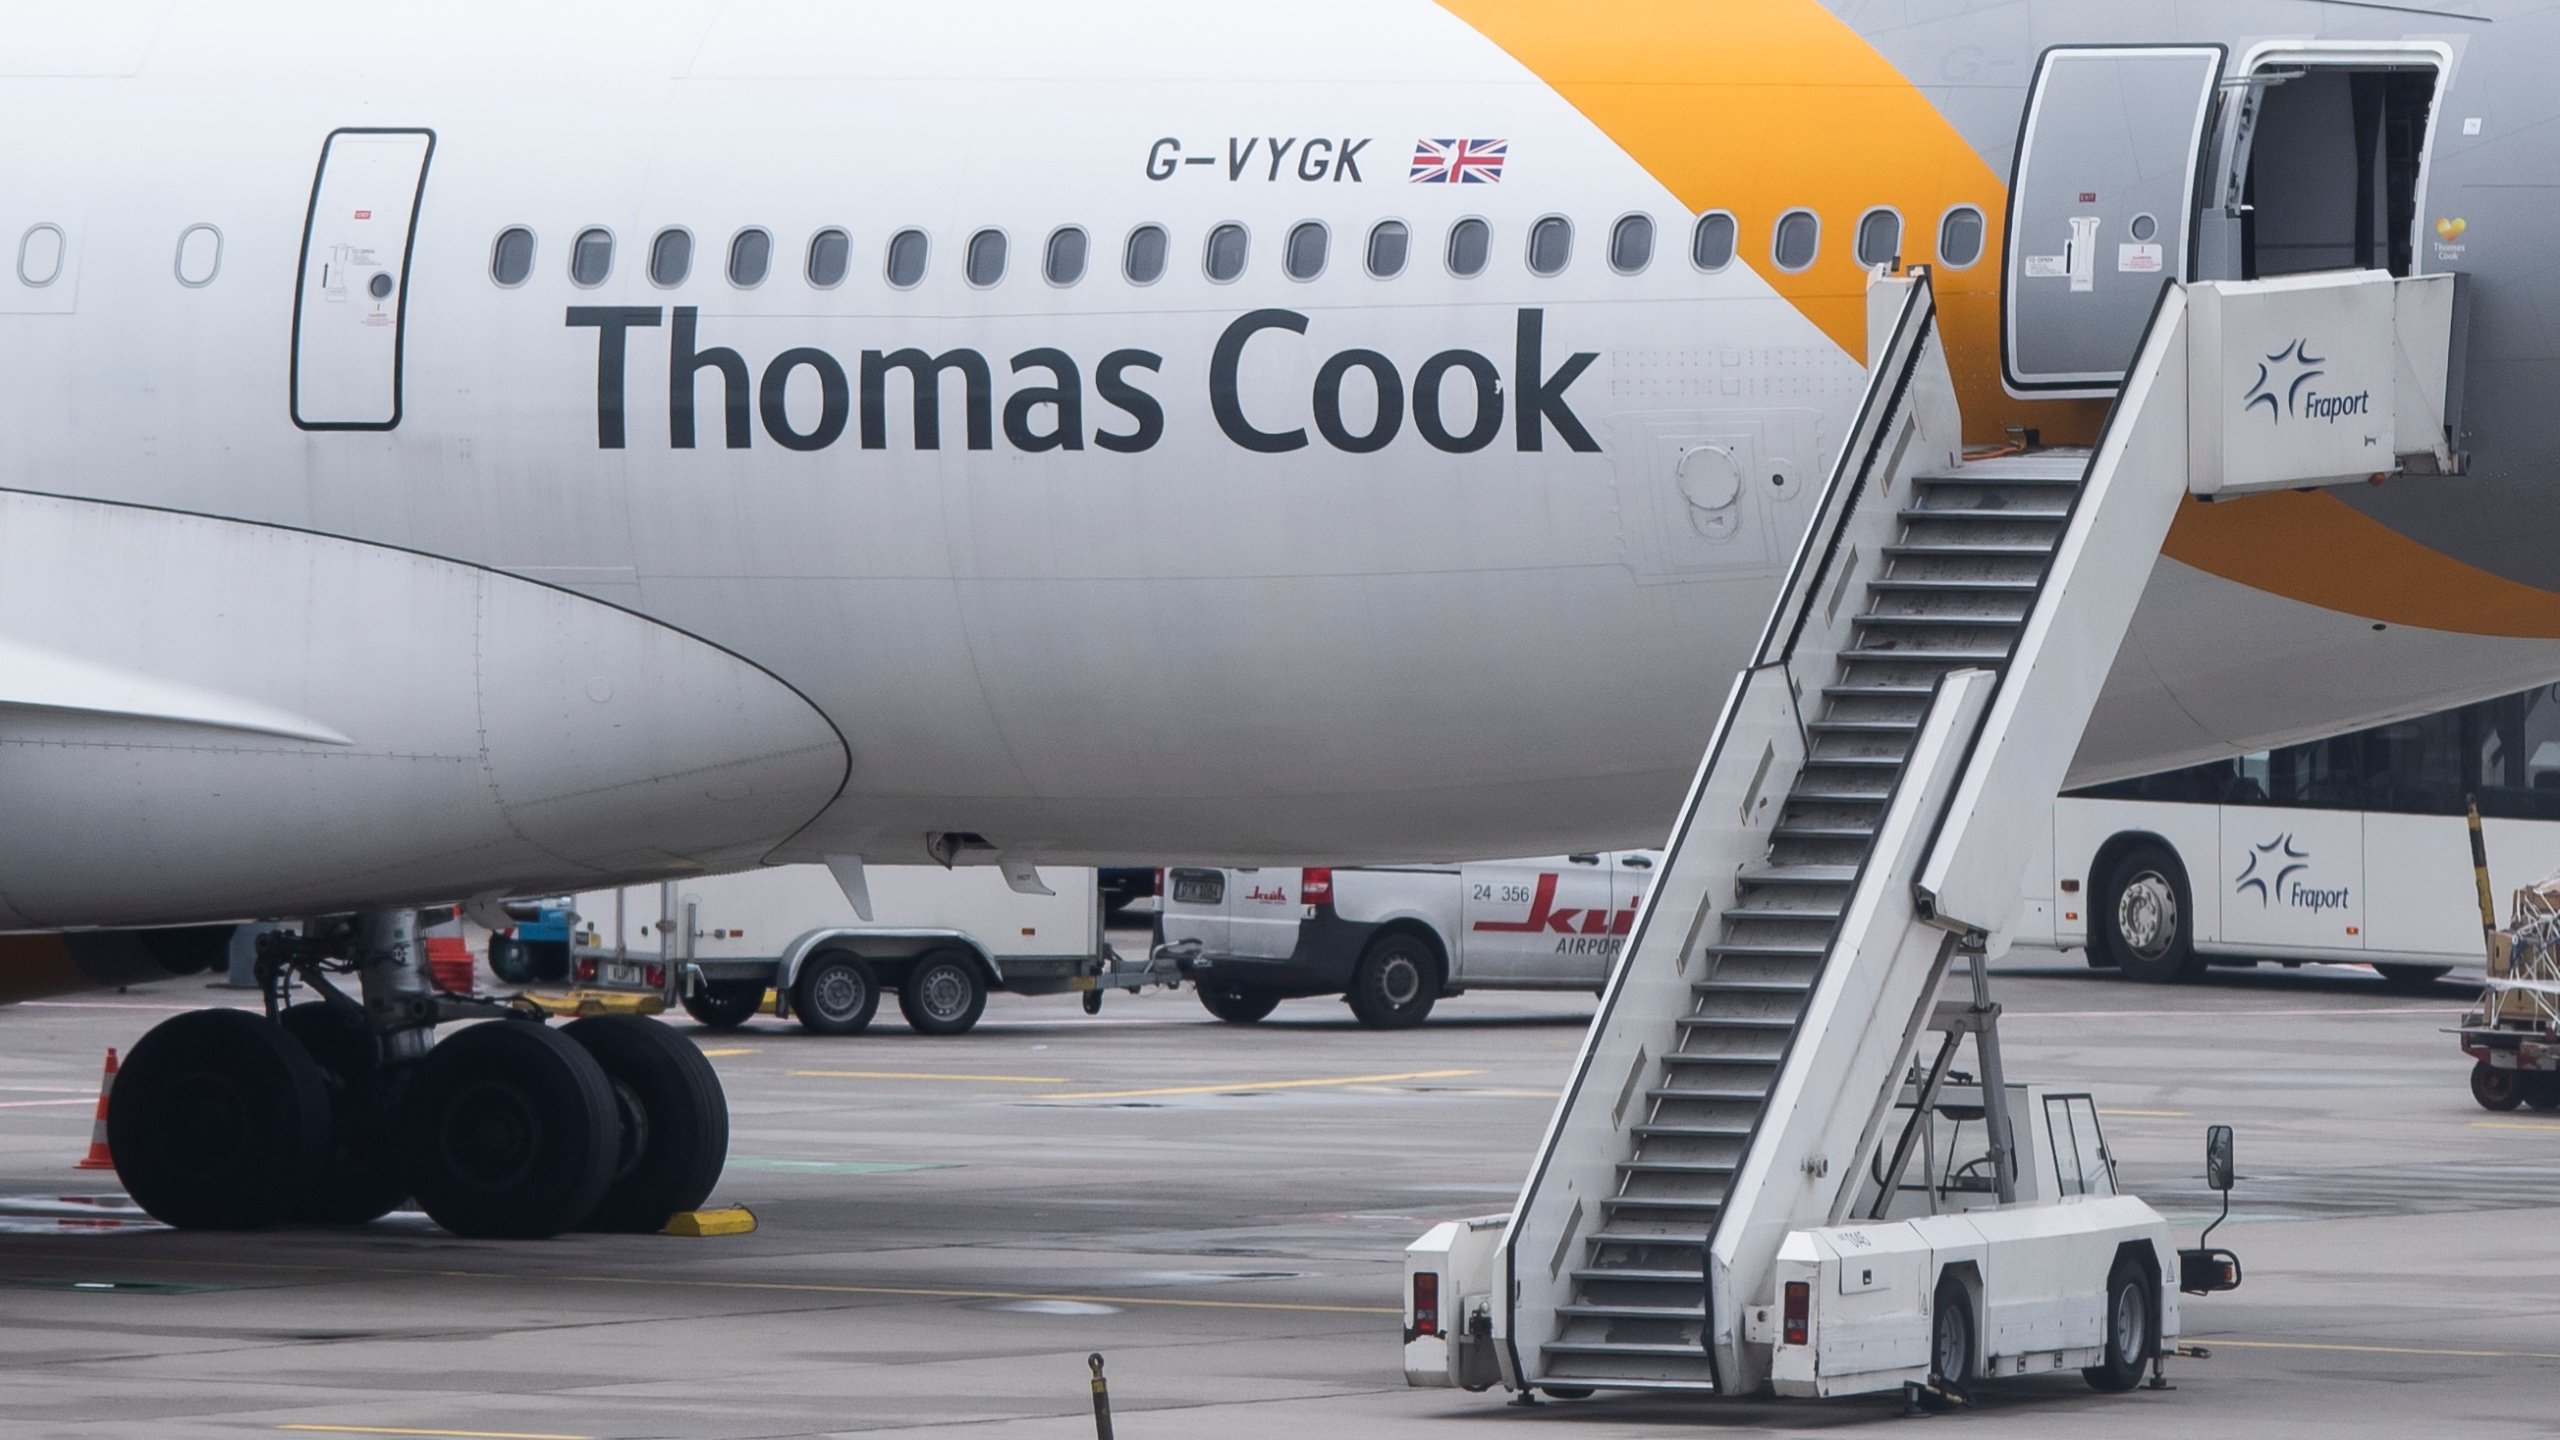 An airplane of British tour operator Thomas Cook is seen on September 23, 2019 at the airport in Frankfurt am Main, western Germany. (Credit: SILAS STEIN/AFP/Getty Images)